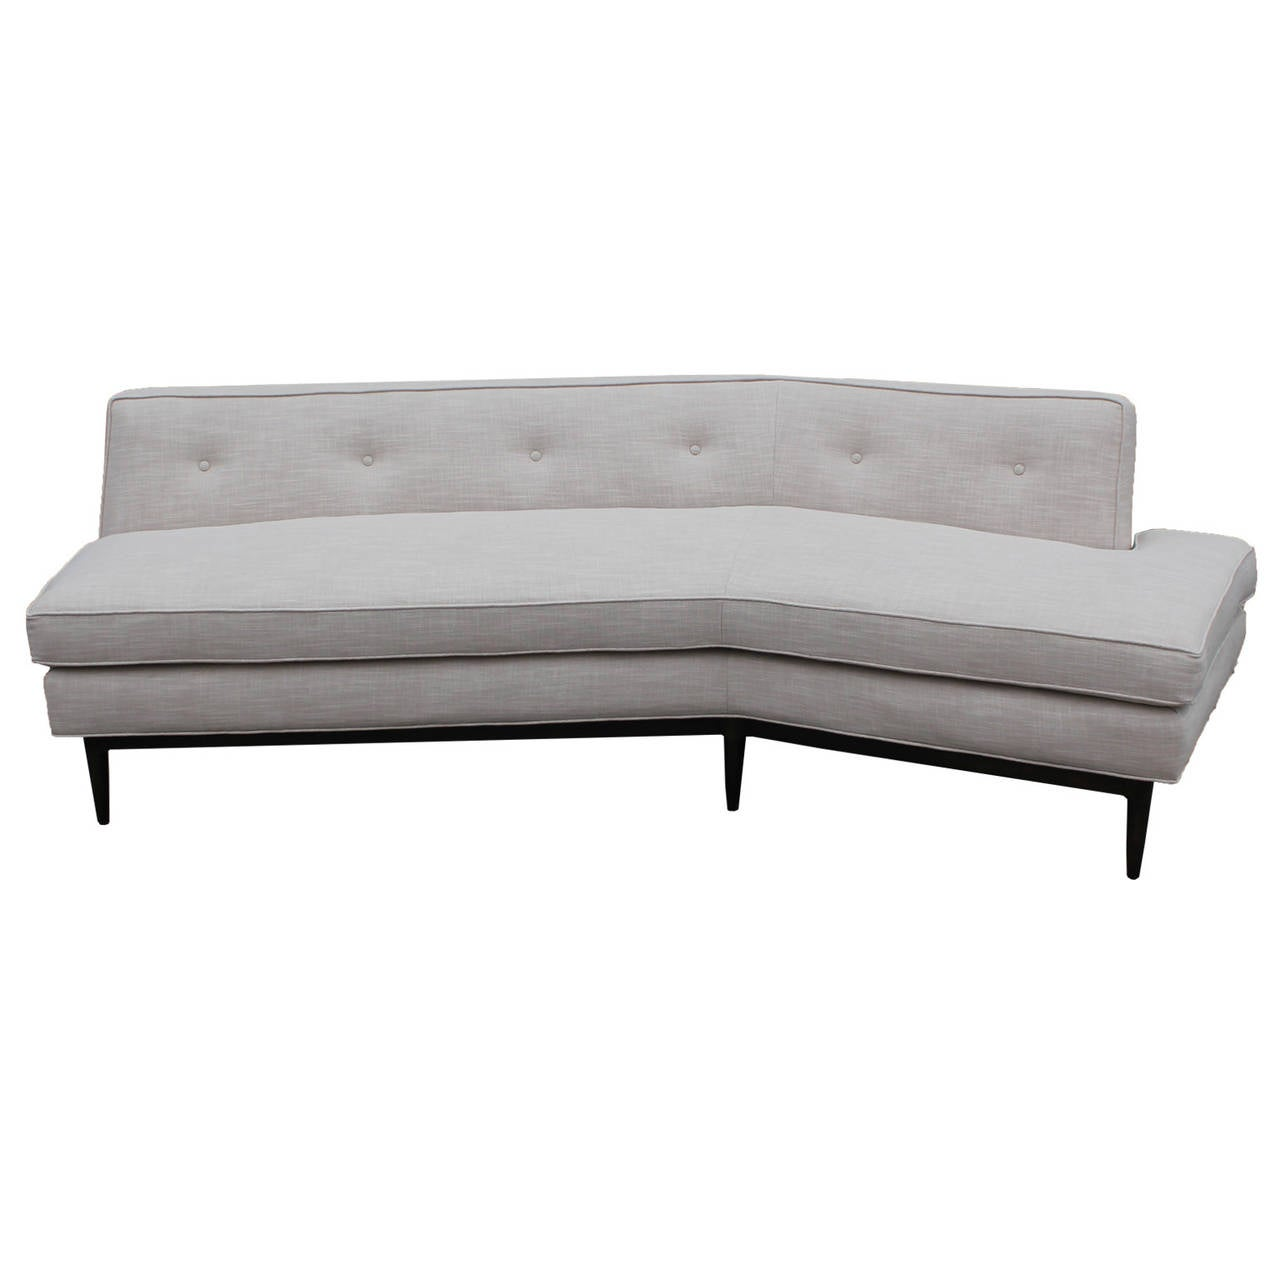 Angled tomlinson white linen sofa at 1stdibs for White linen sectional sofa